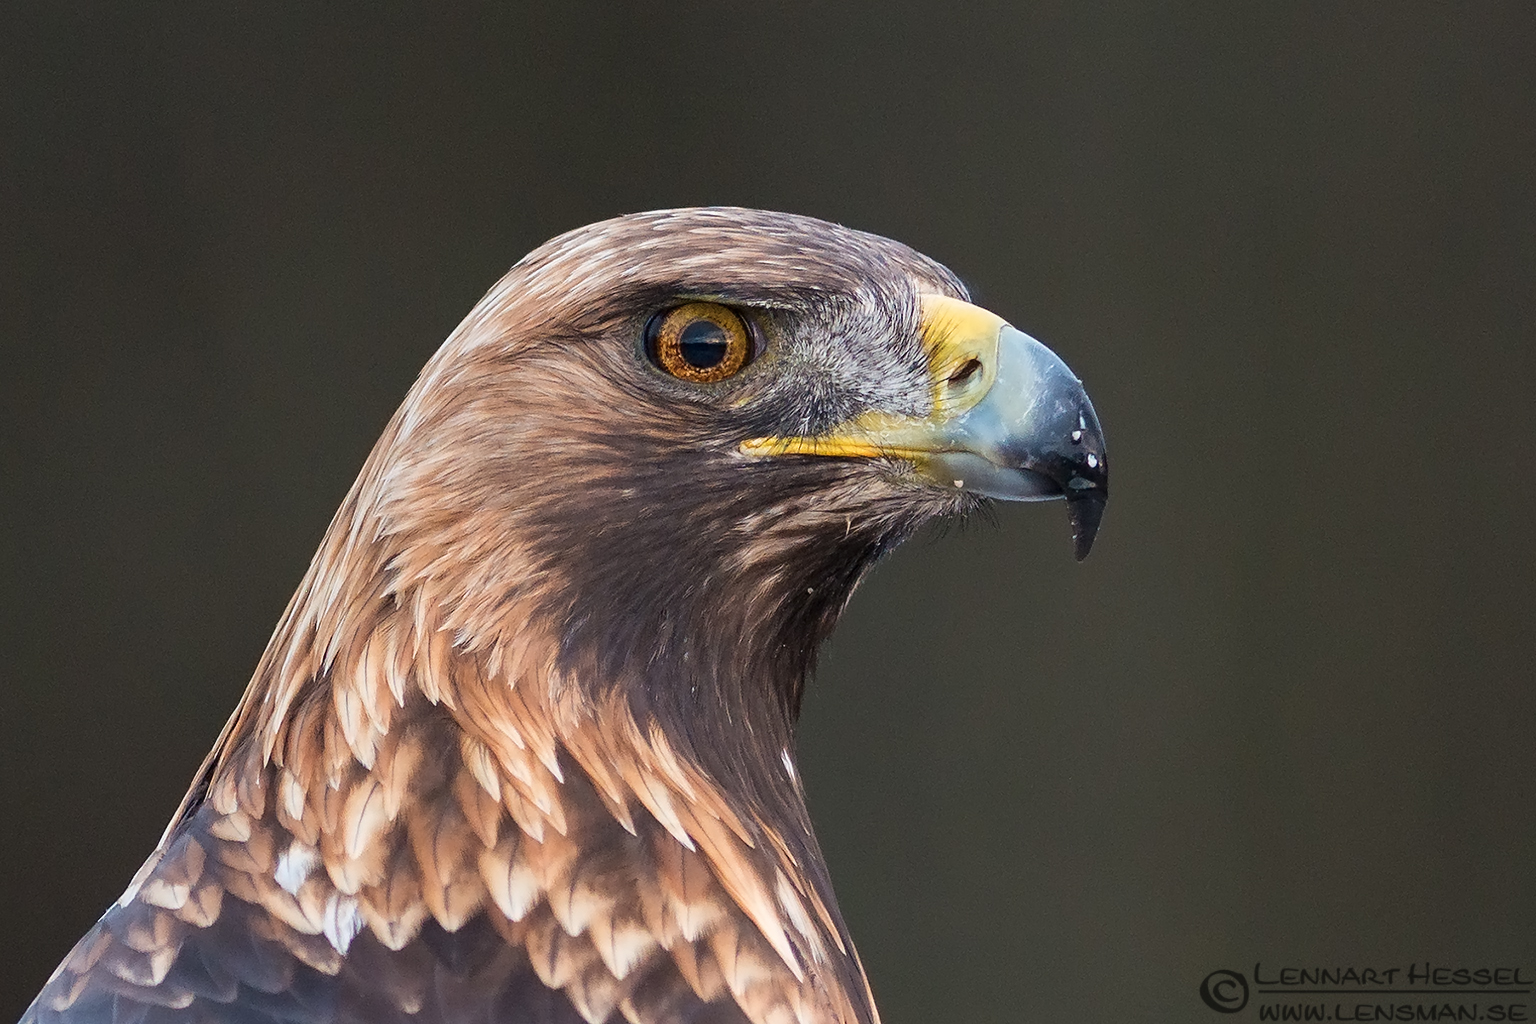 Golden Eagle portrait from the Golden Eagle workshop